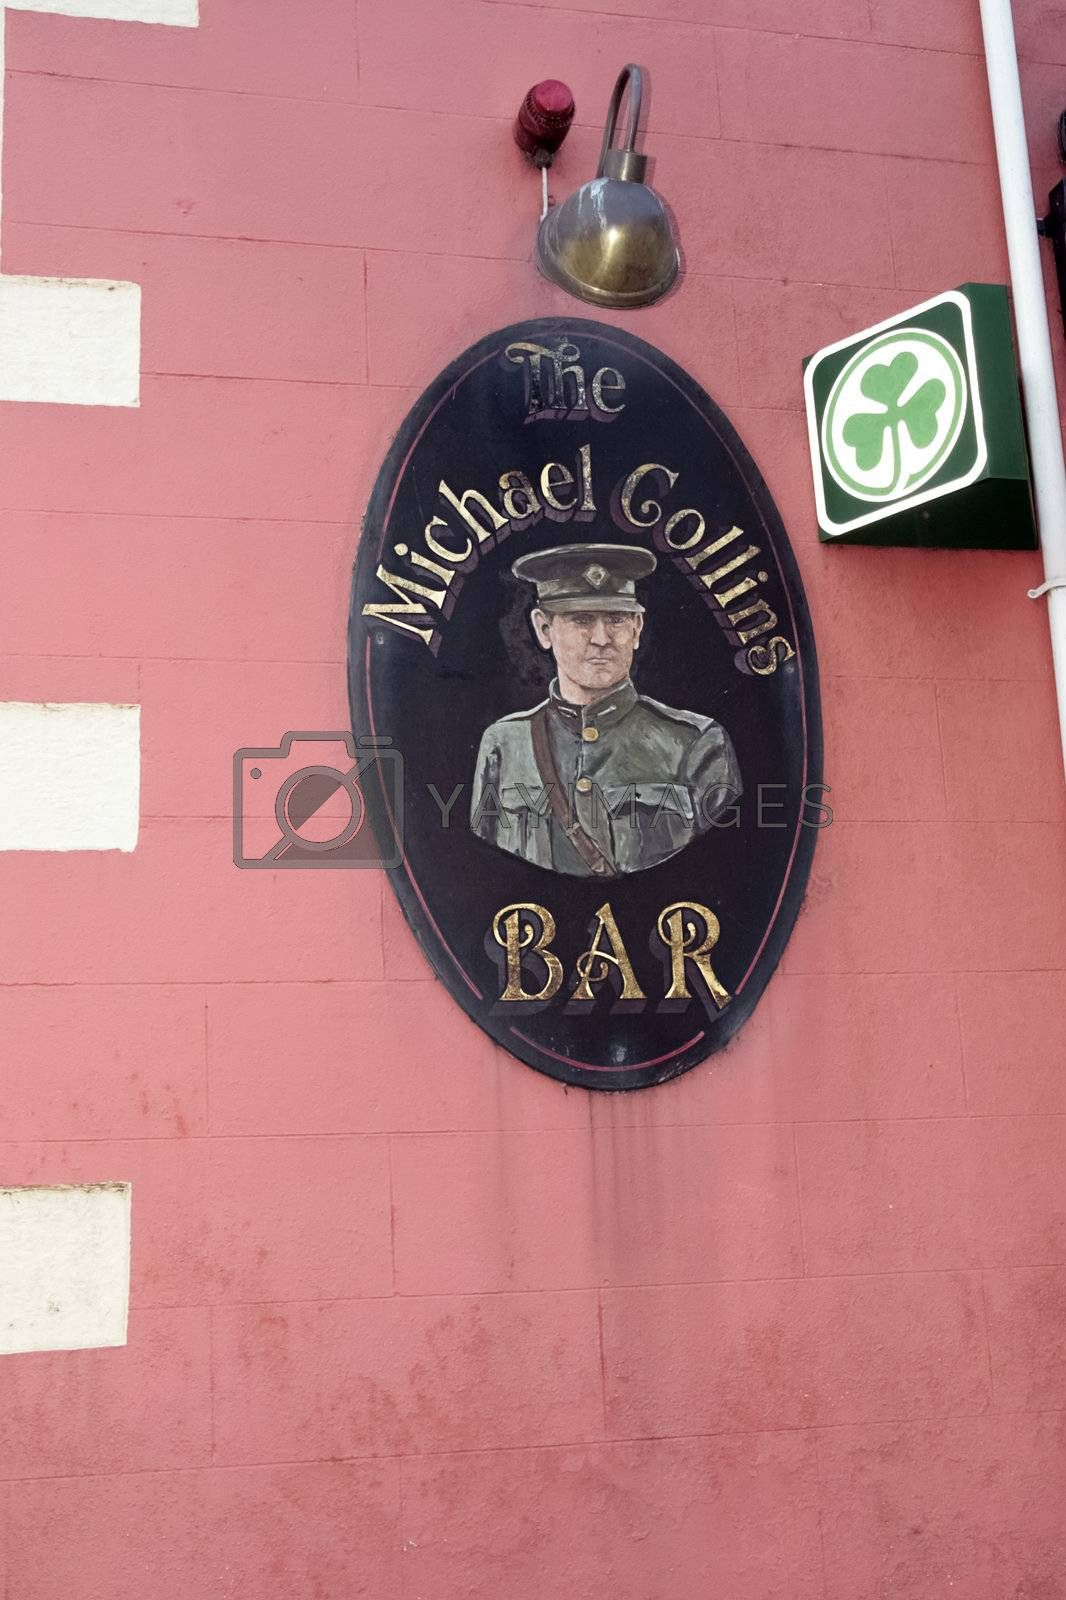 a sign for the Michael Collins bar in Ireland